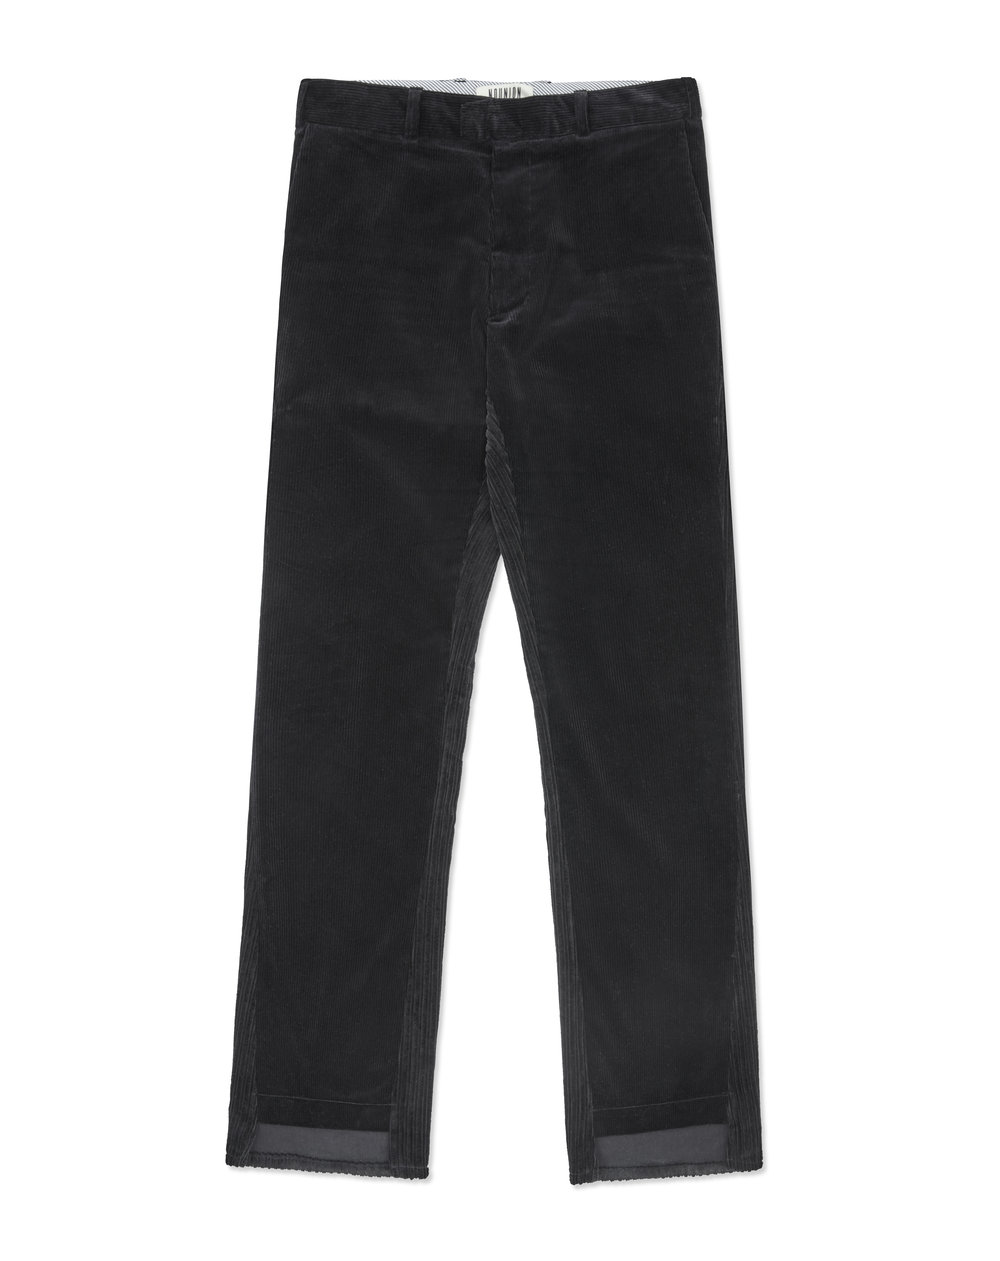 C2-P_04B_Elongated Flared Corduroy Trousers_01.jpg